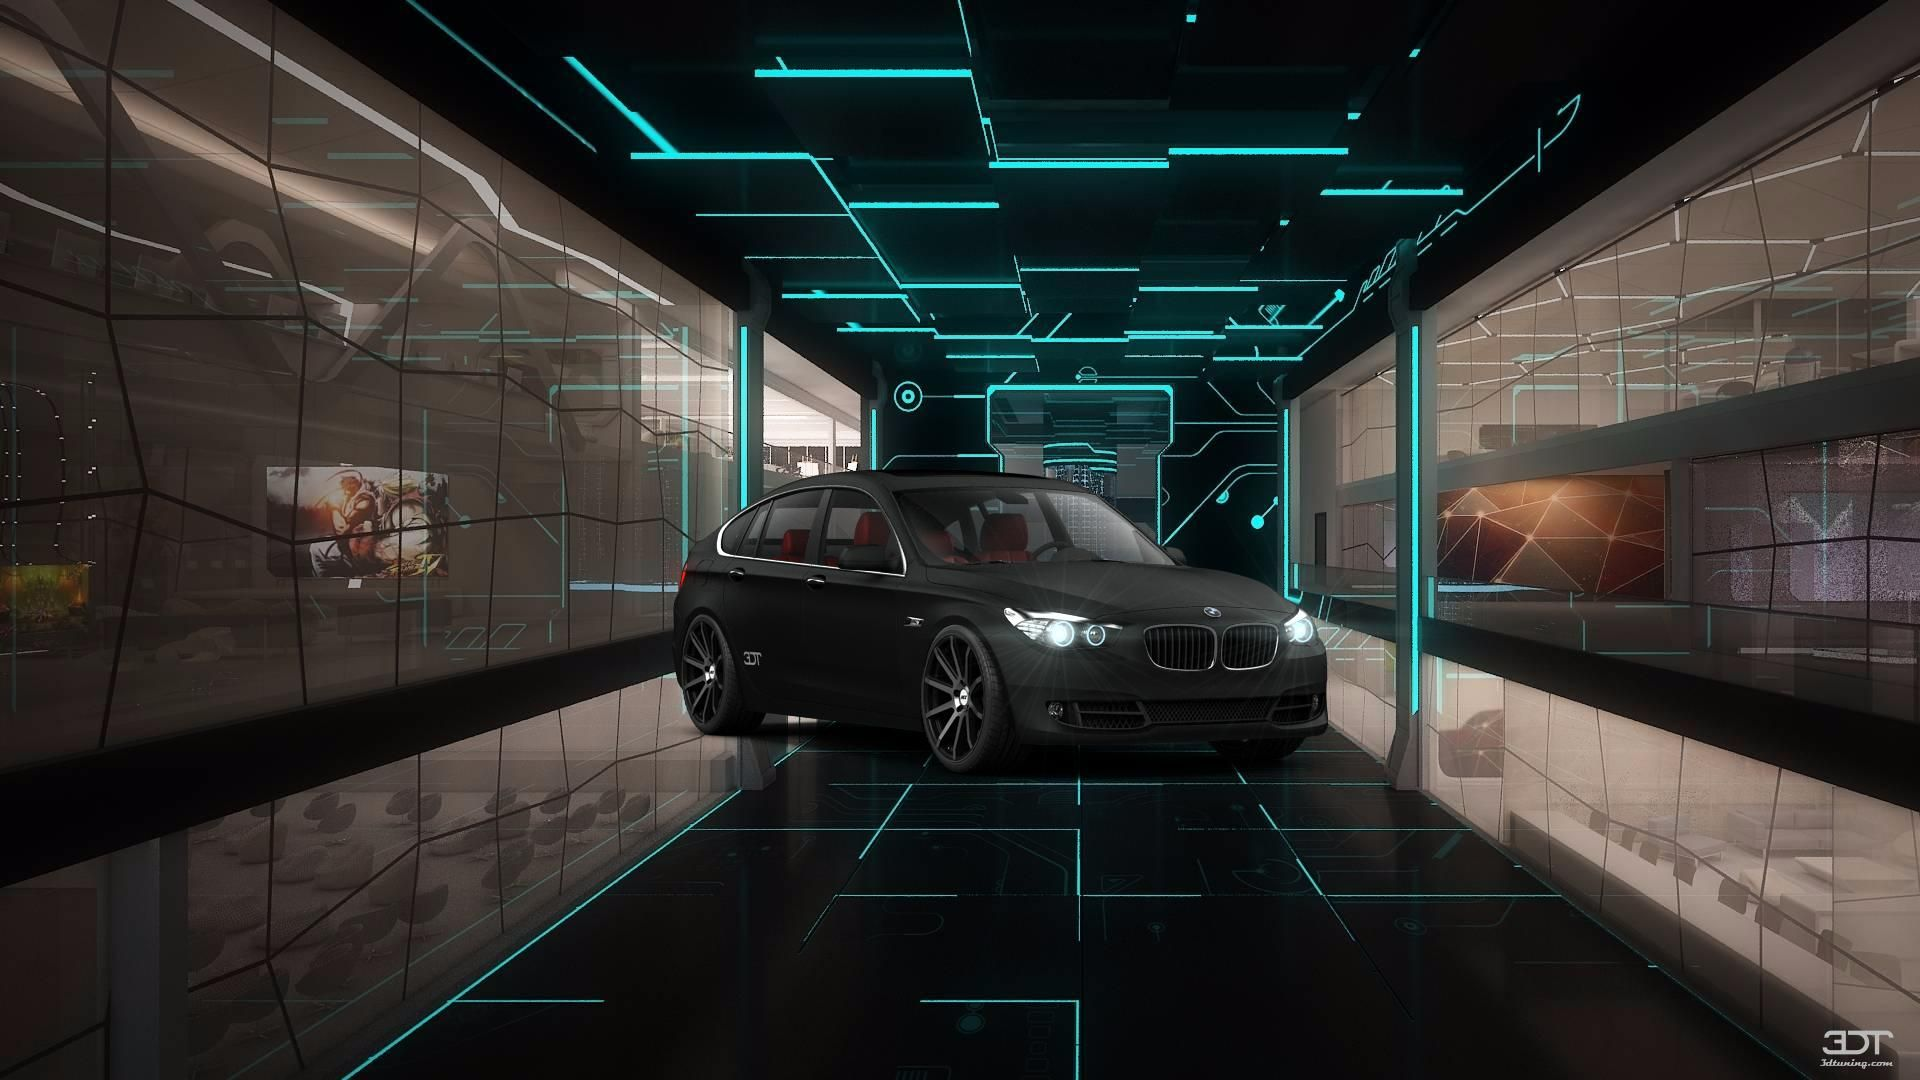 Checkout my tuning #BMW 5SeriesGranTurismo 2009 at 3DTuning #3dtuning #tuning